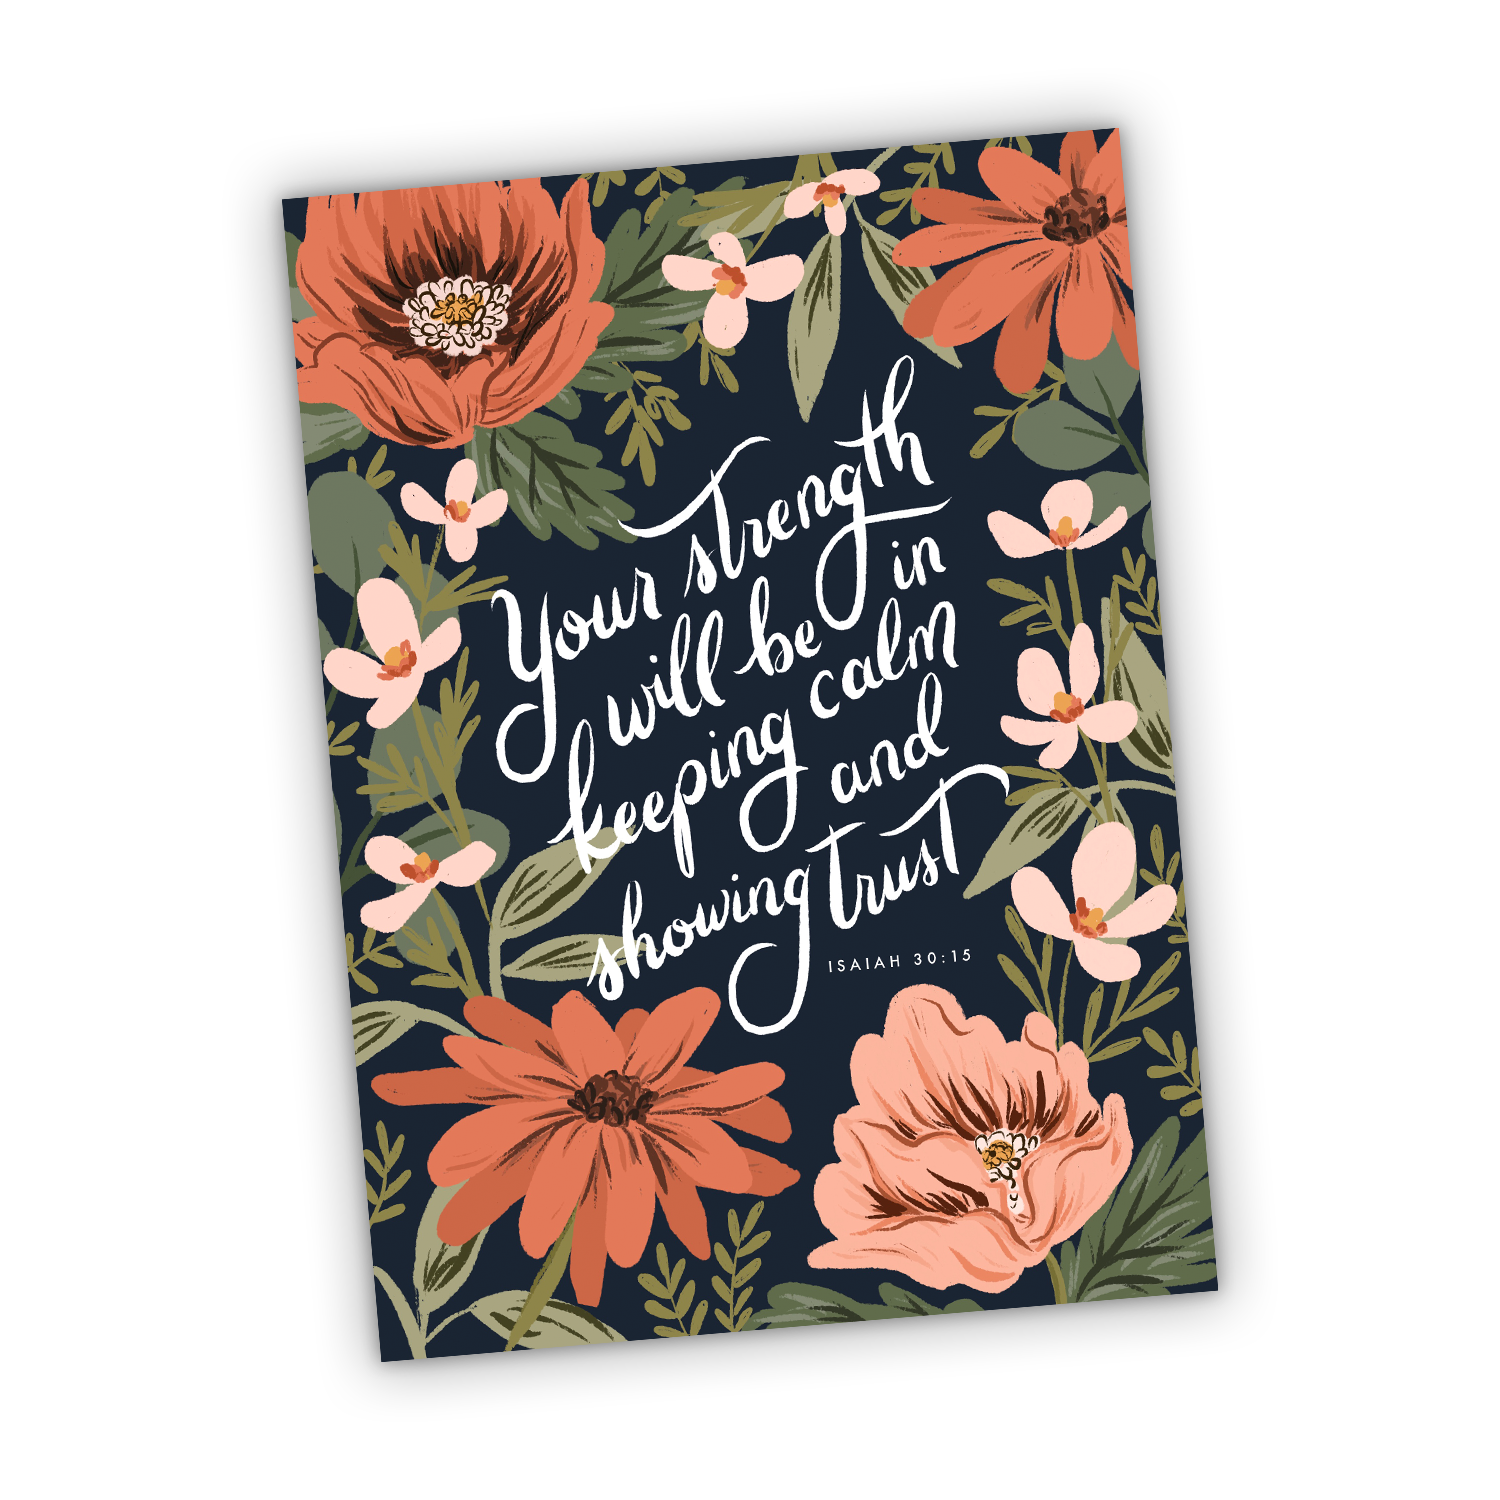 Your Strength Will Be in Keeping Calm and Showing Trust Isaiah 30:15 Greeting Card